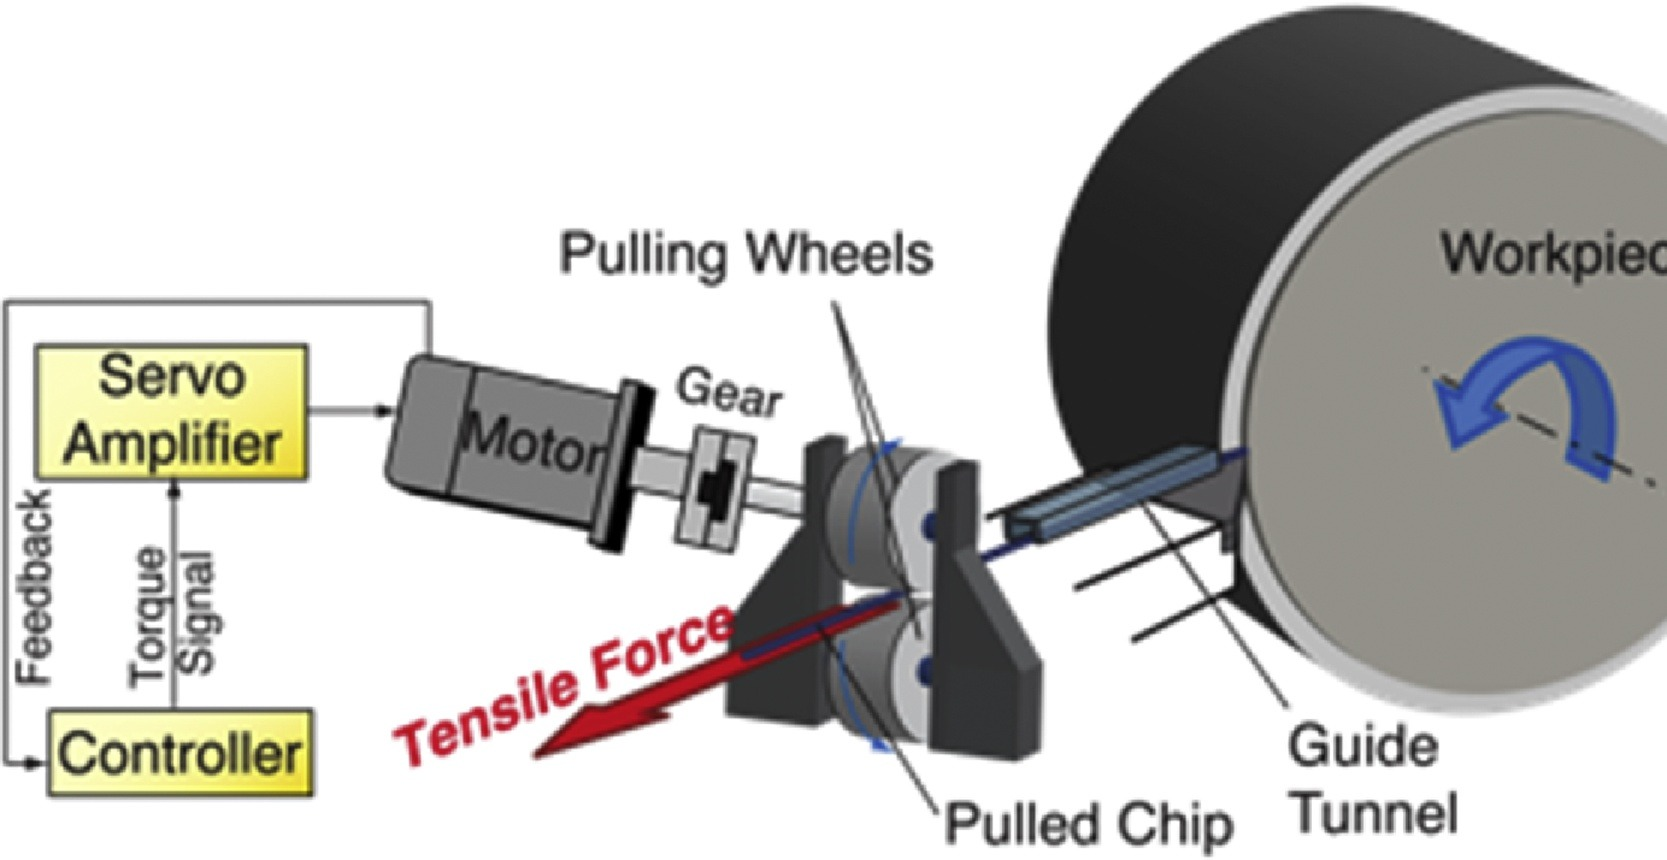 Chip-Pulling Diagram